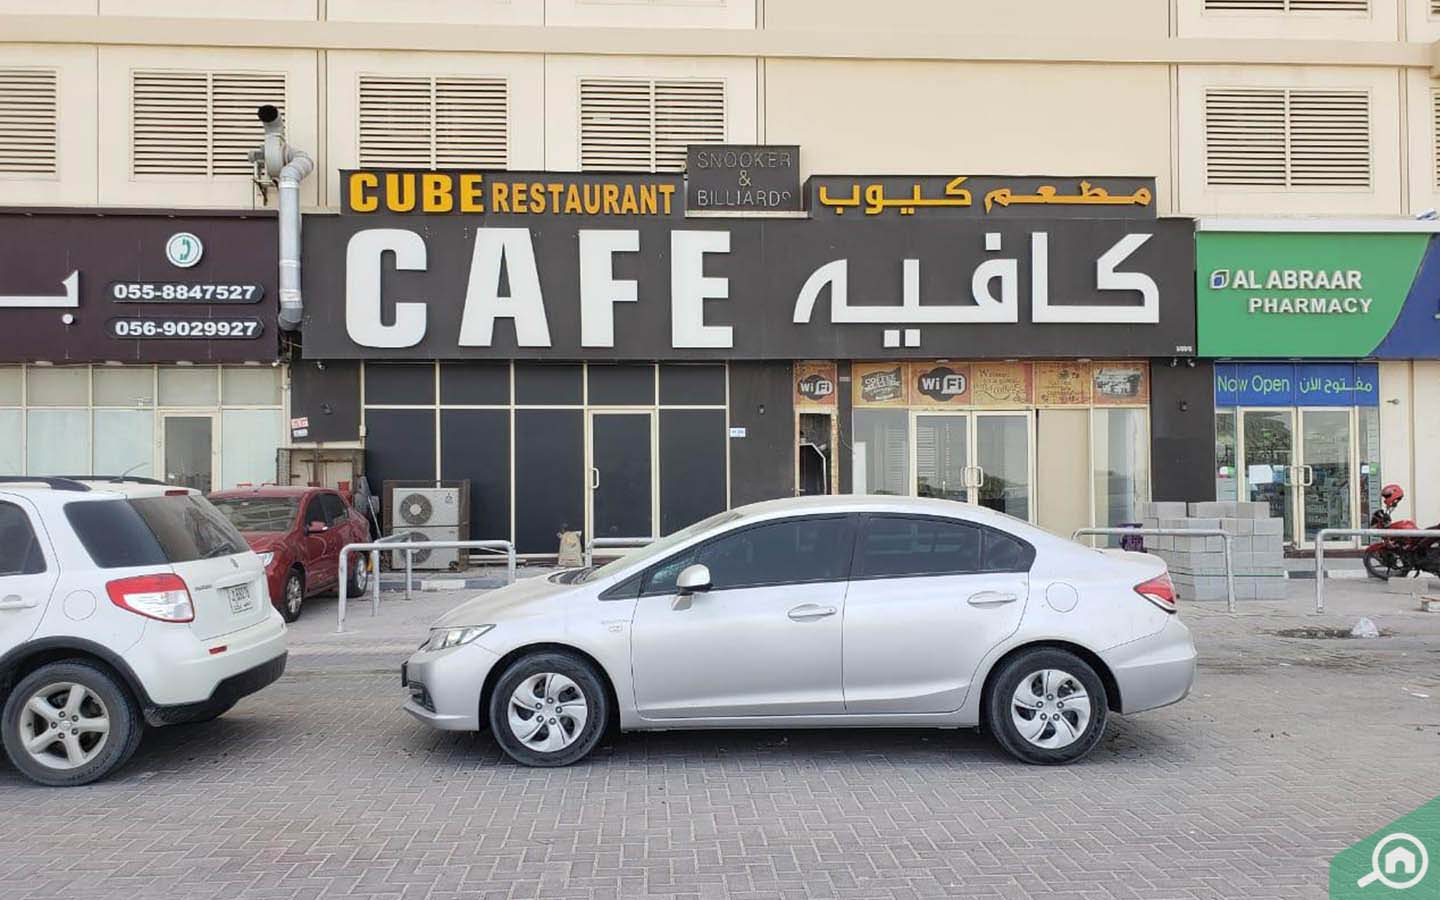 Cafe in Emirates City